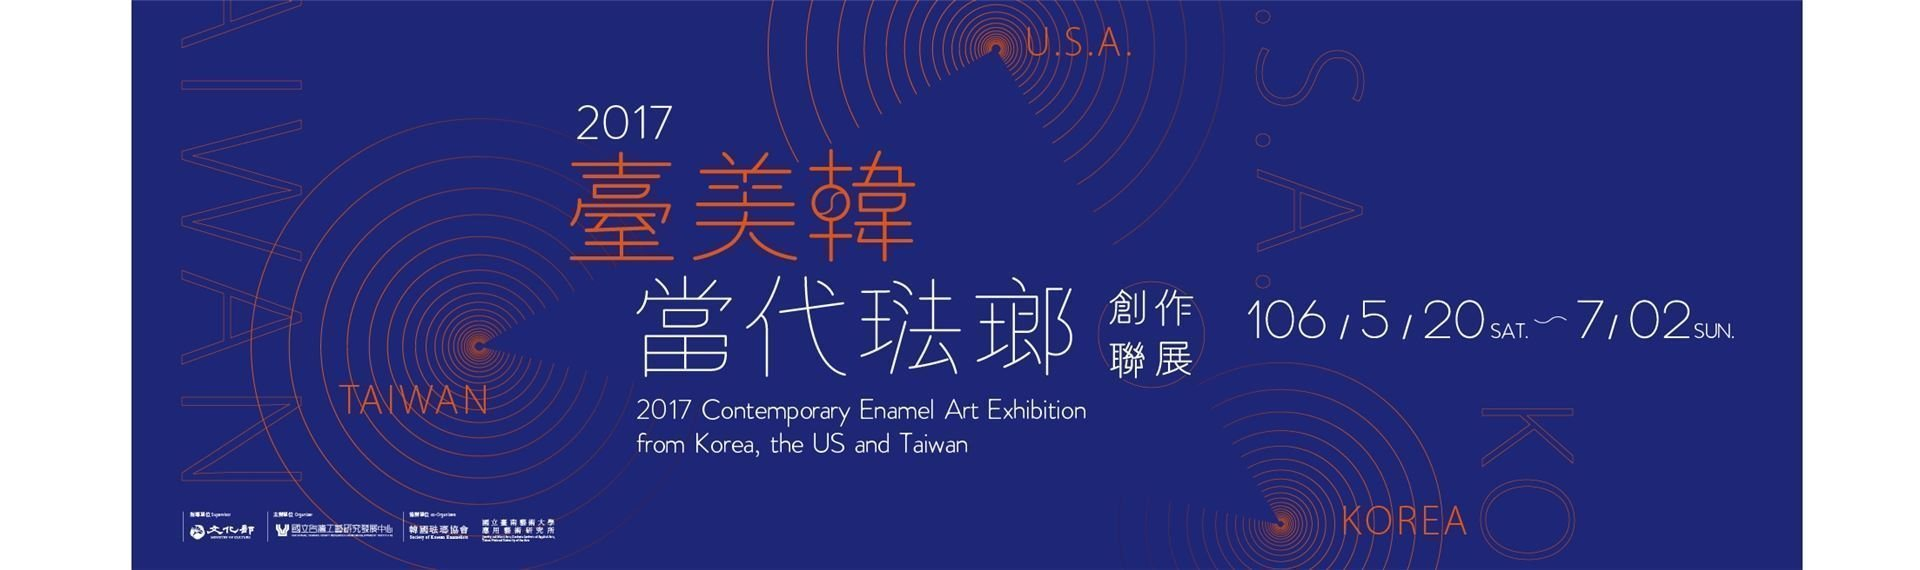 2017 Contemporary Enamel Art Exhibition from Korea, the US and Taiwan